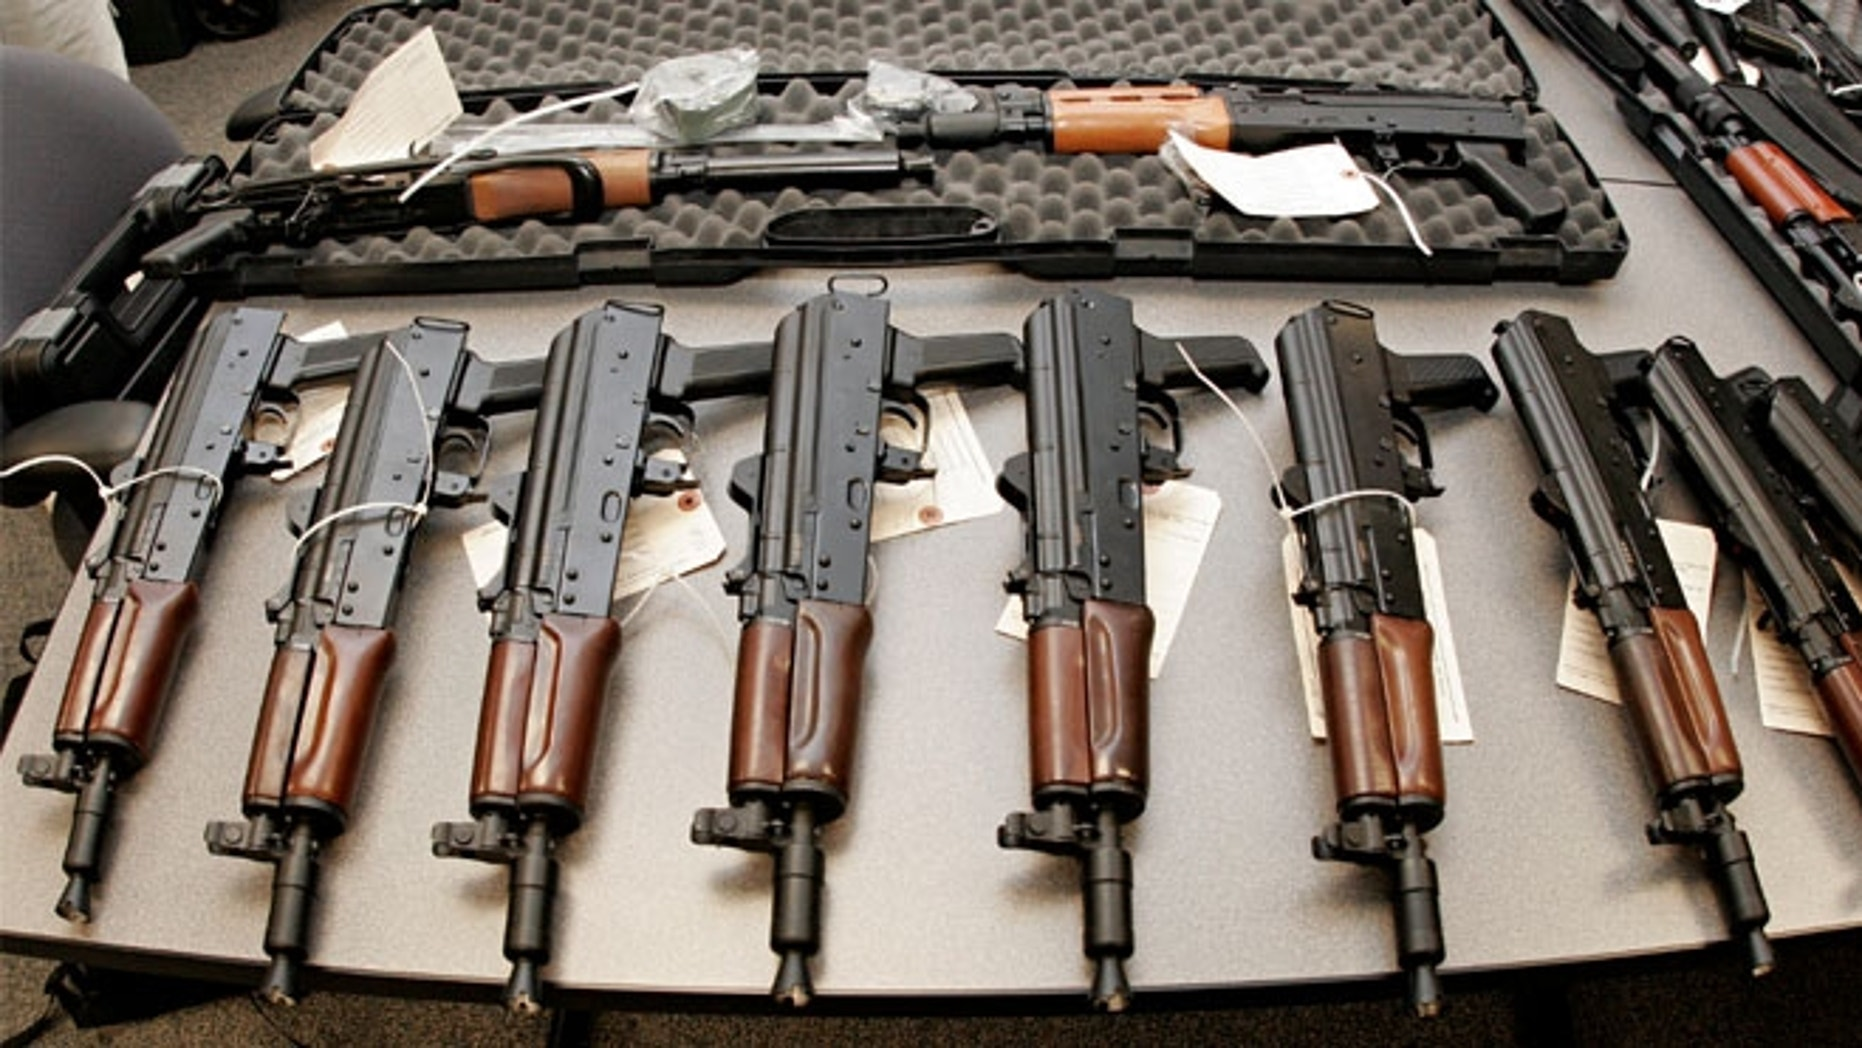 This 2008 file photo shows weapons seized by the Bureau of Alcohol, Tobacco, Firearms and Explosives (ATF), and laid out on a table at the bureau's Arizona headquarters in Phoenix.